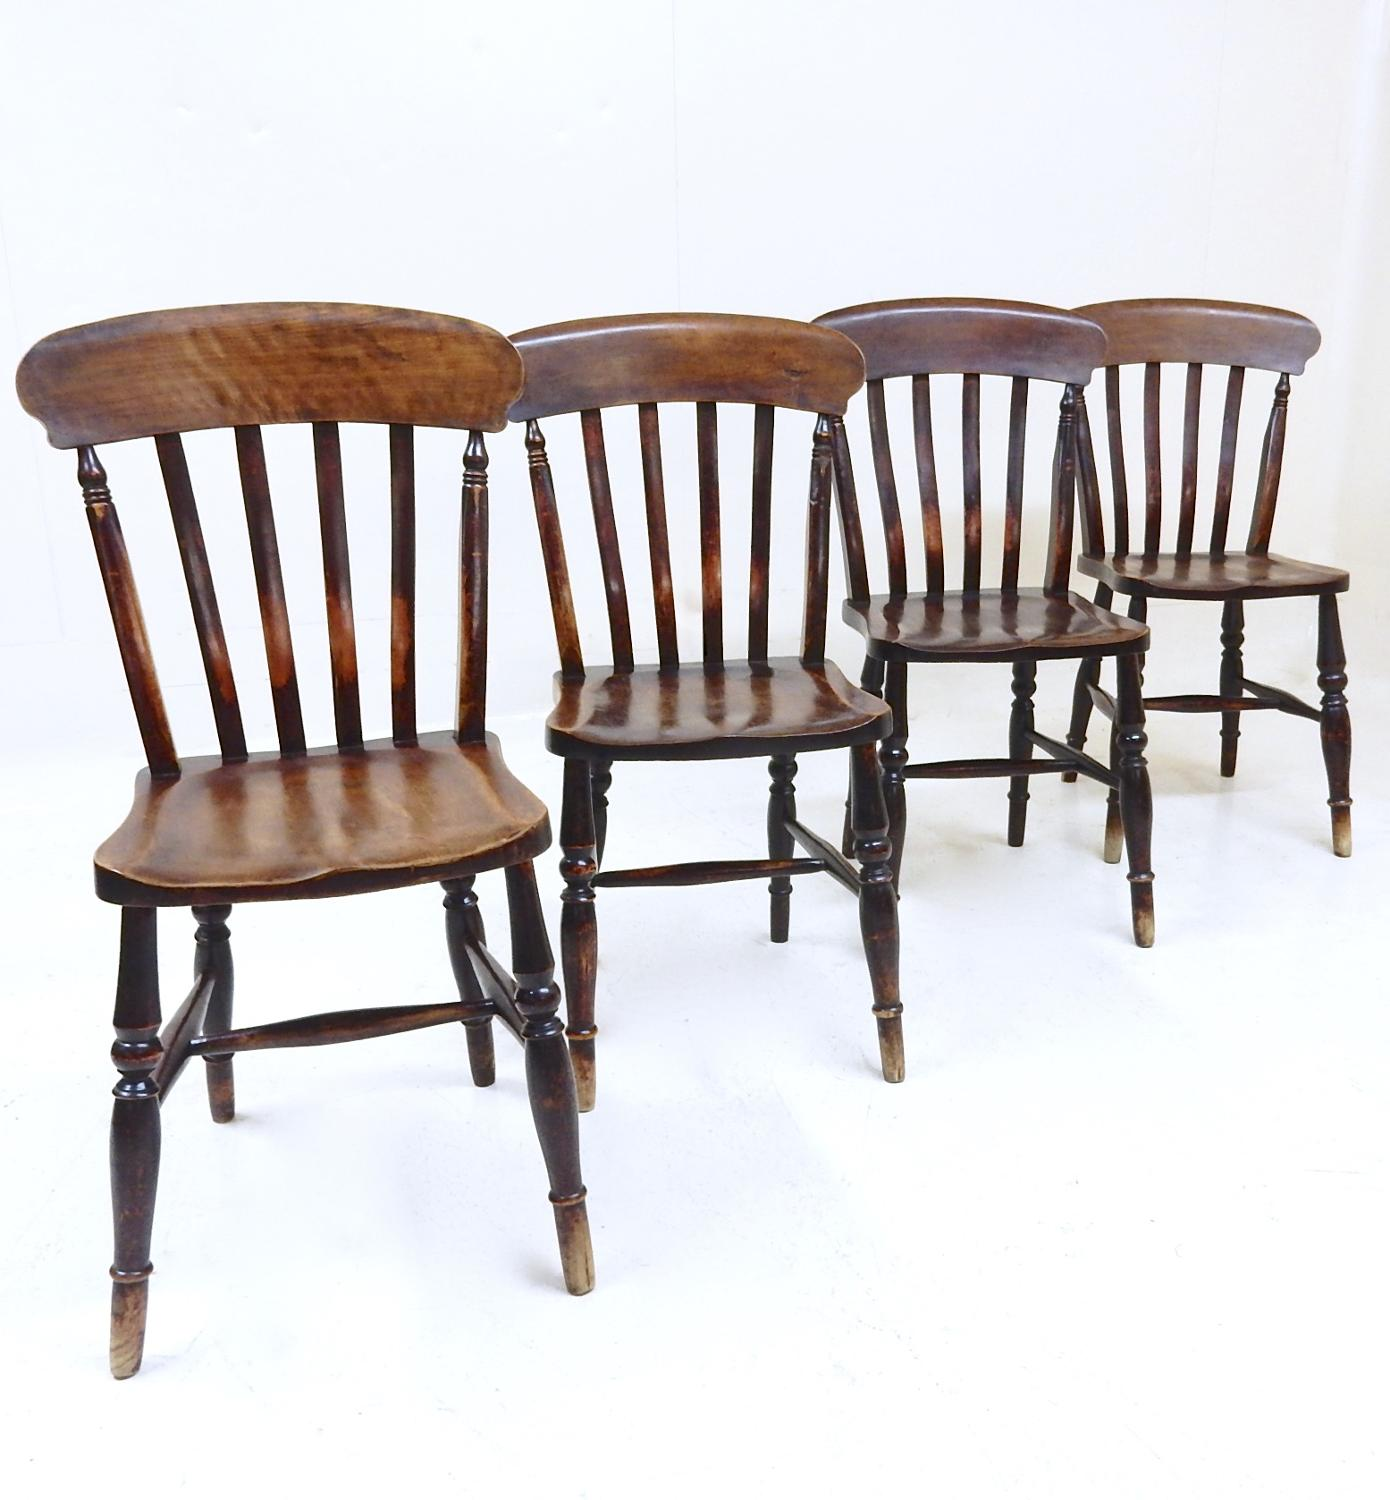 windsor kitchen chairs fold up asda antique in tables and